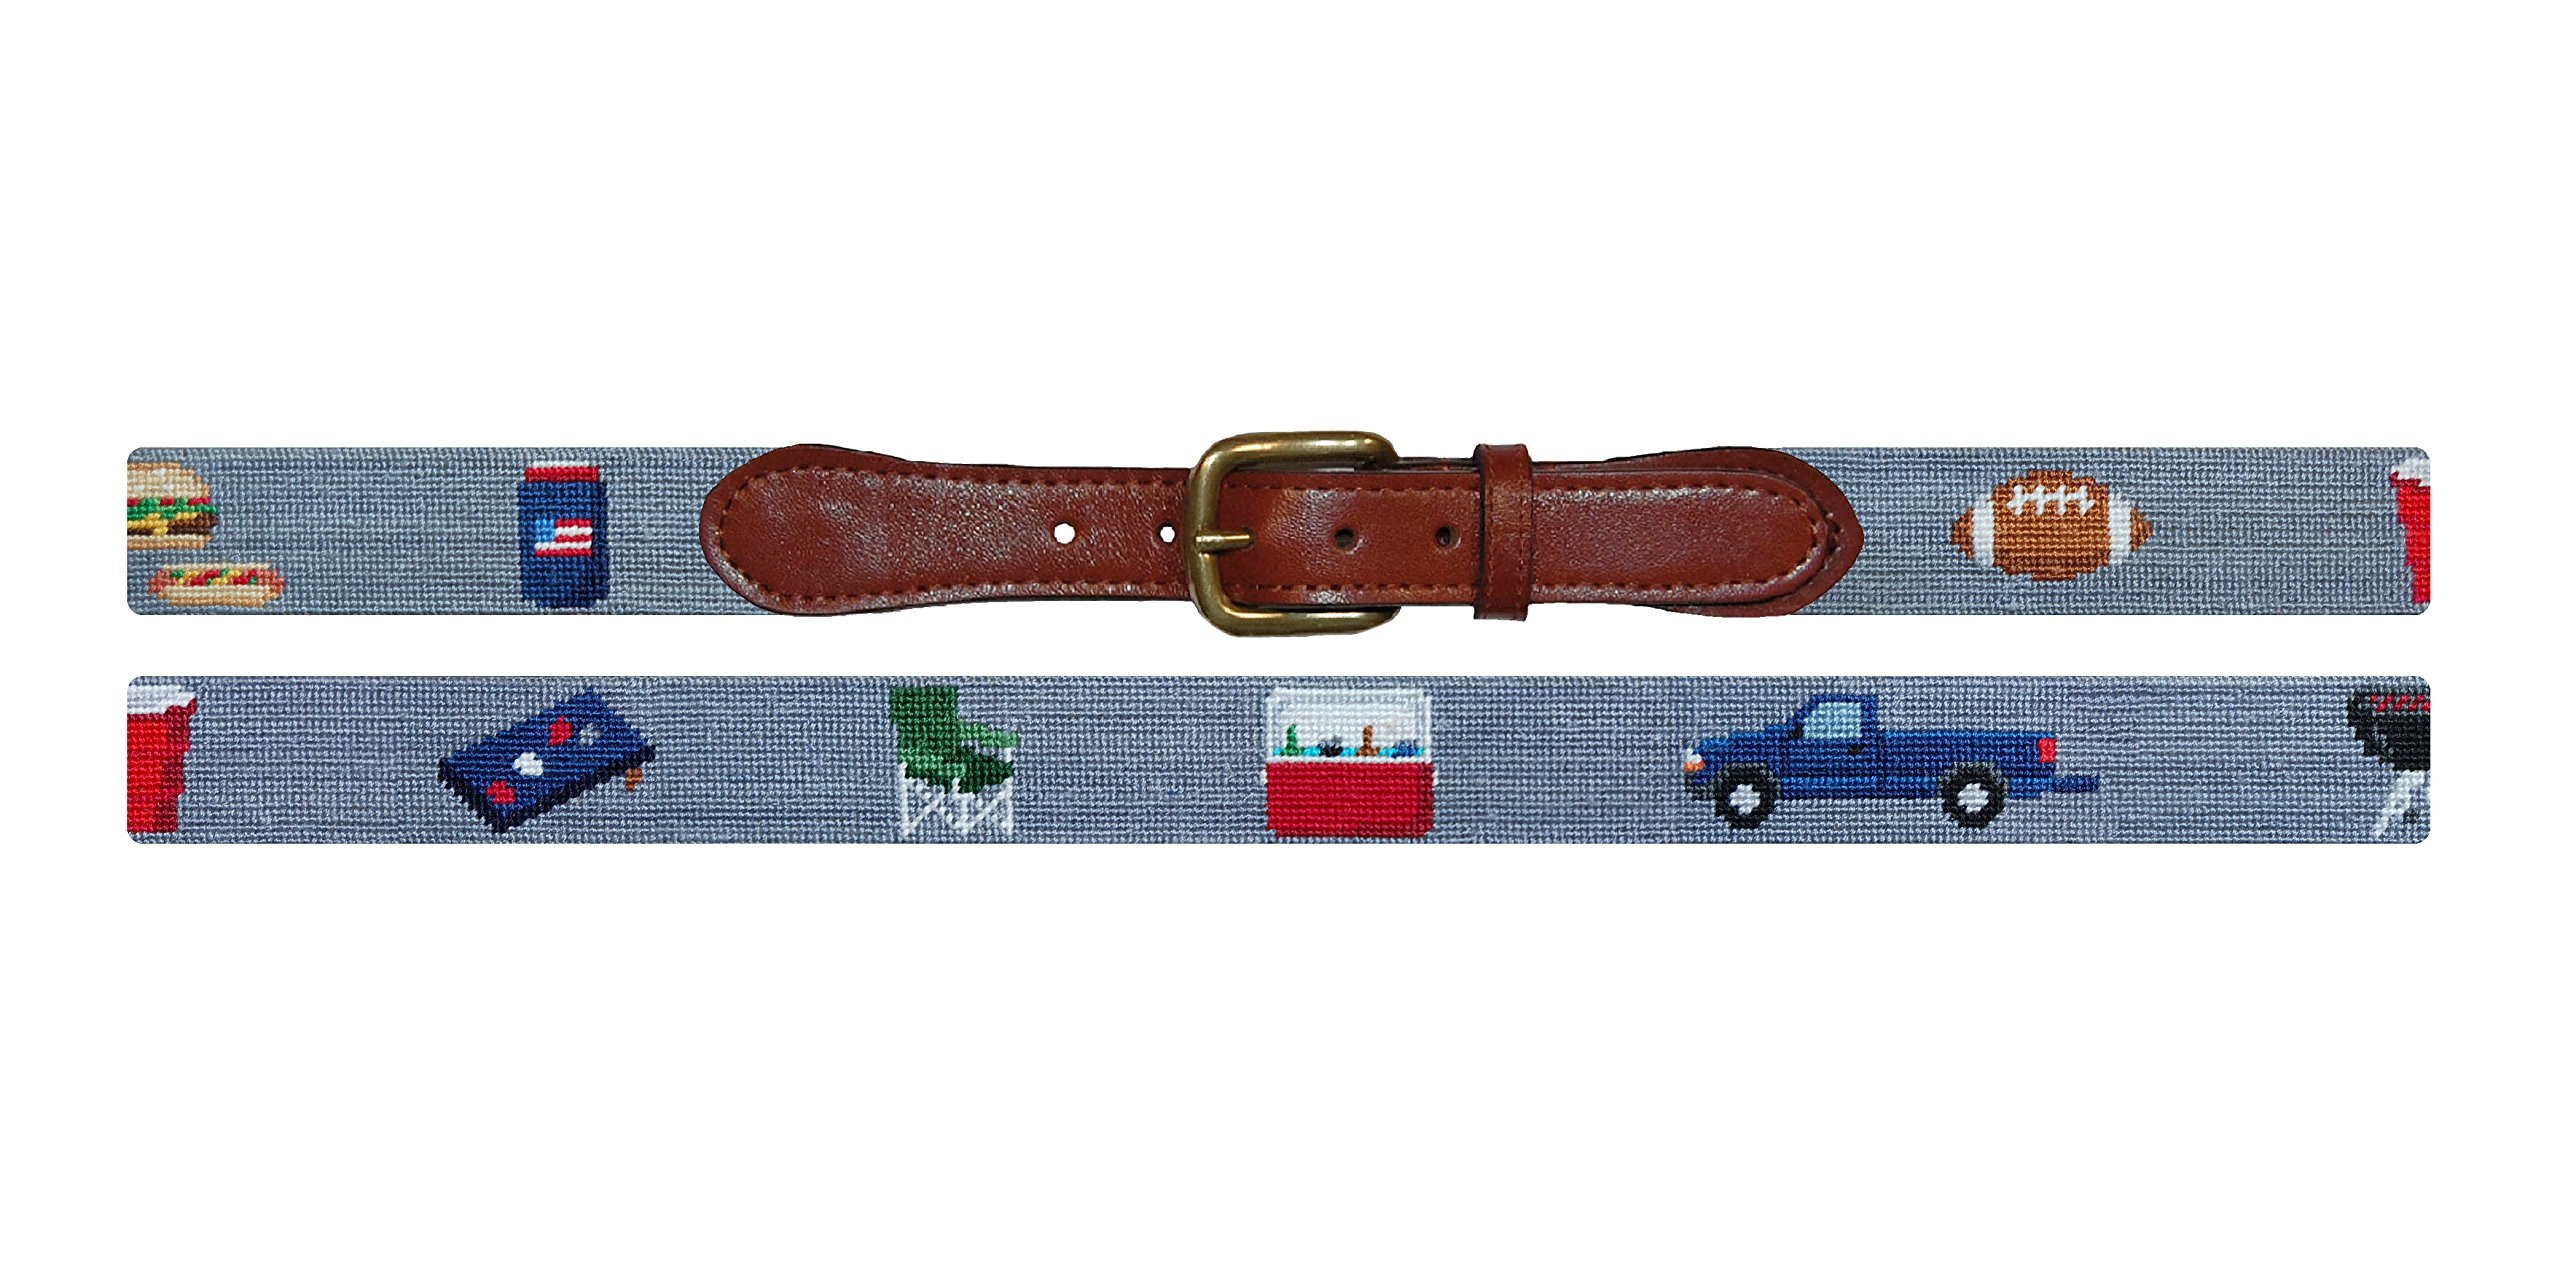 Smathers & Branson Tailgating Needlepoint Belt, Size 34 - Steel Grey (B-261-34) by Smathers & Branson (Image #1)